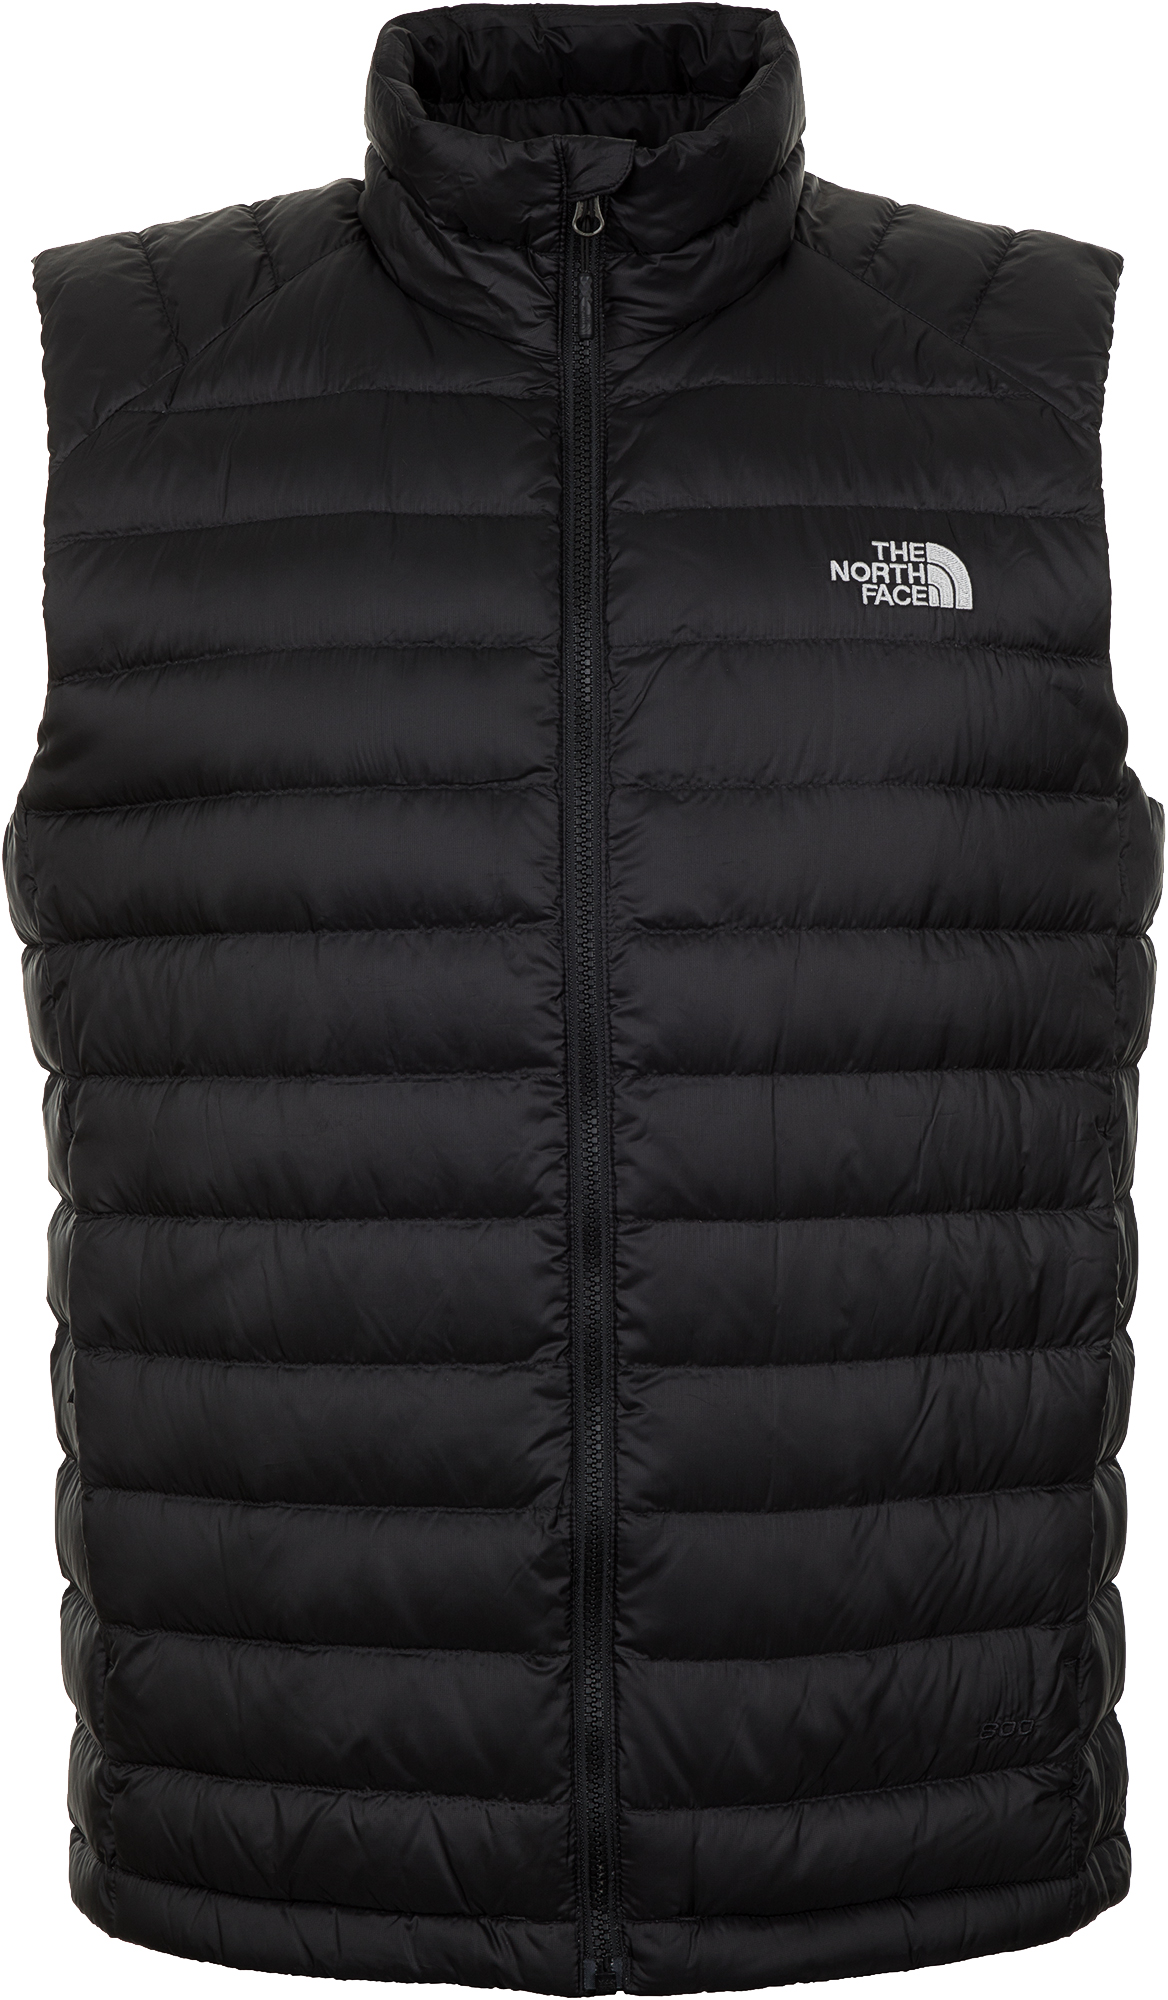 The North Face Жилет пуховый мужской The North Face Trevail Vest, размер 52 жилет the north face the north face thermoball